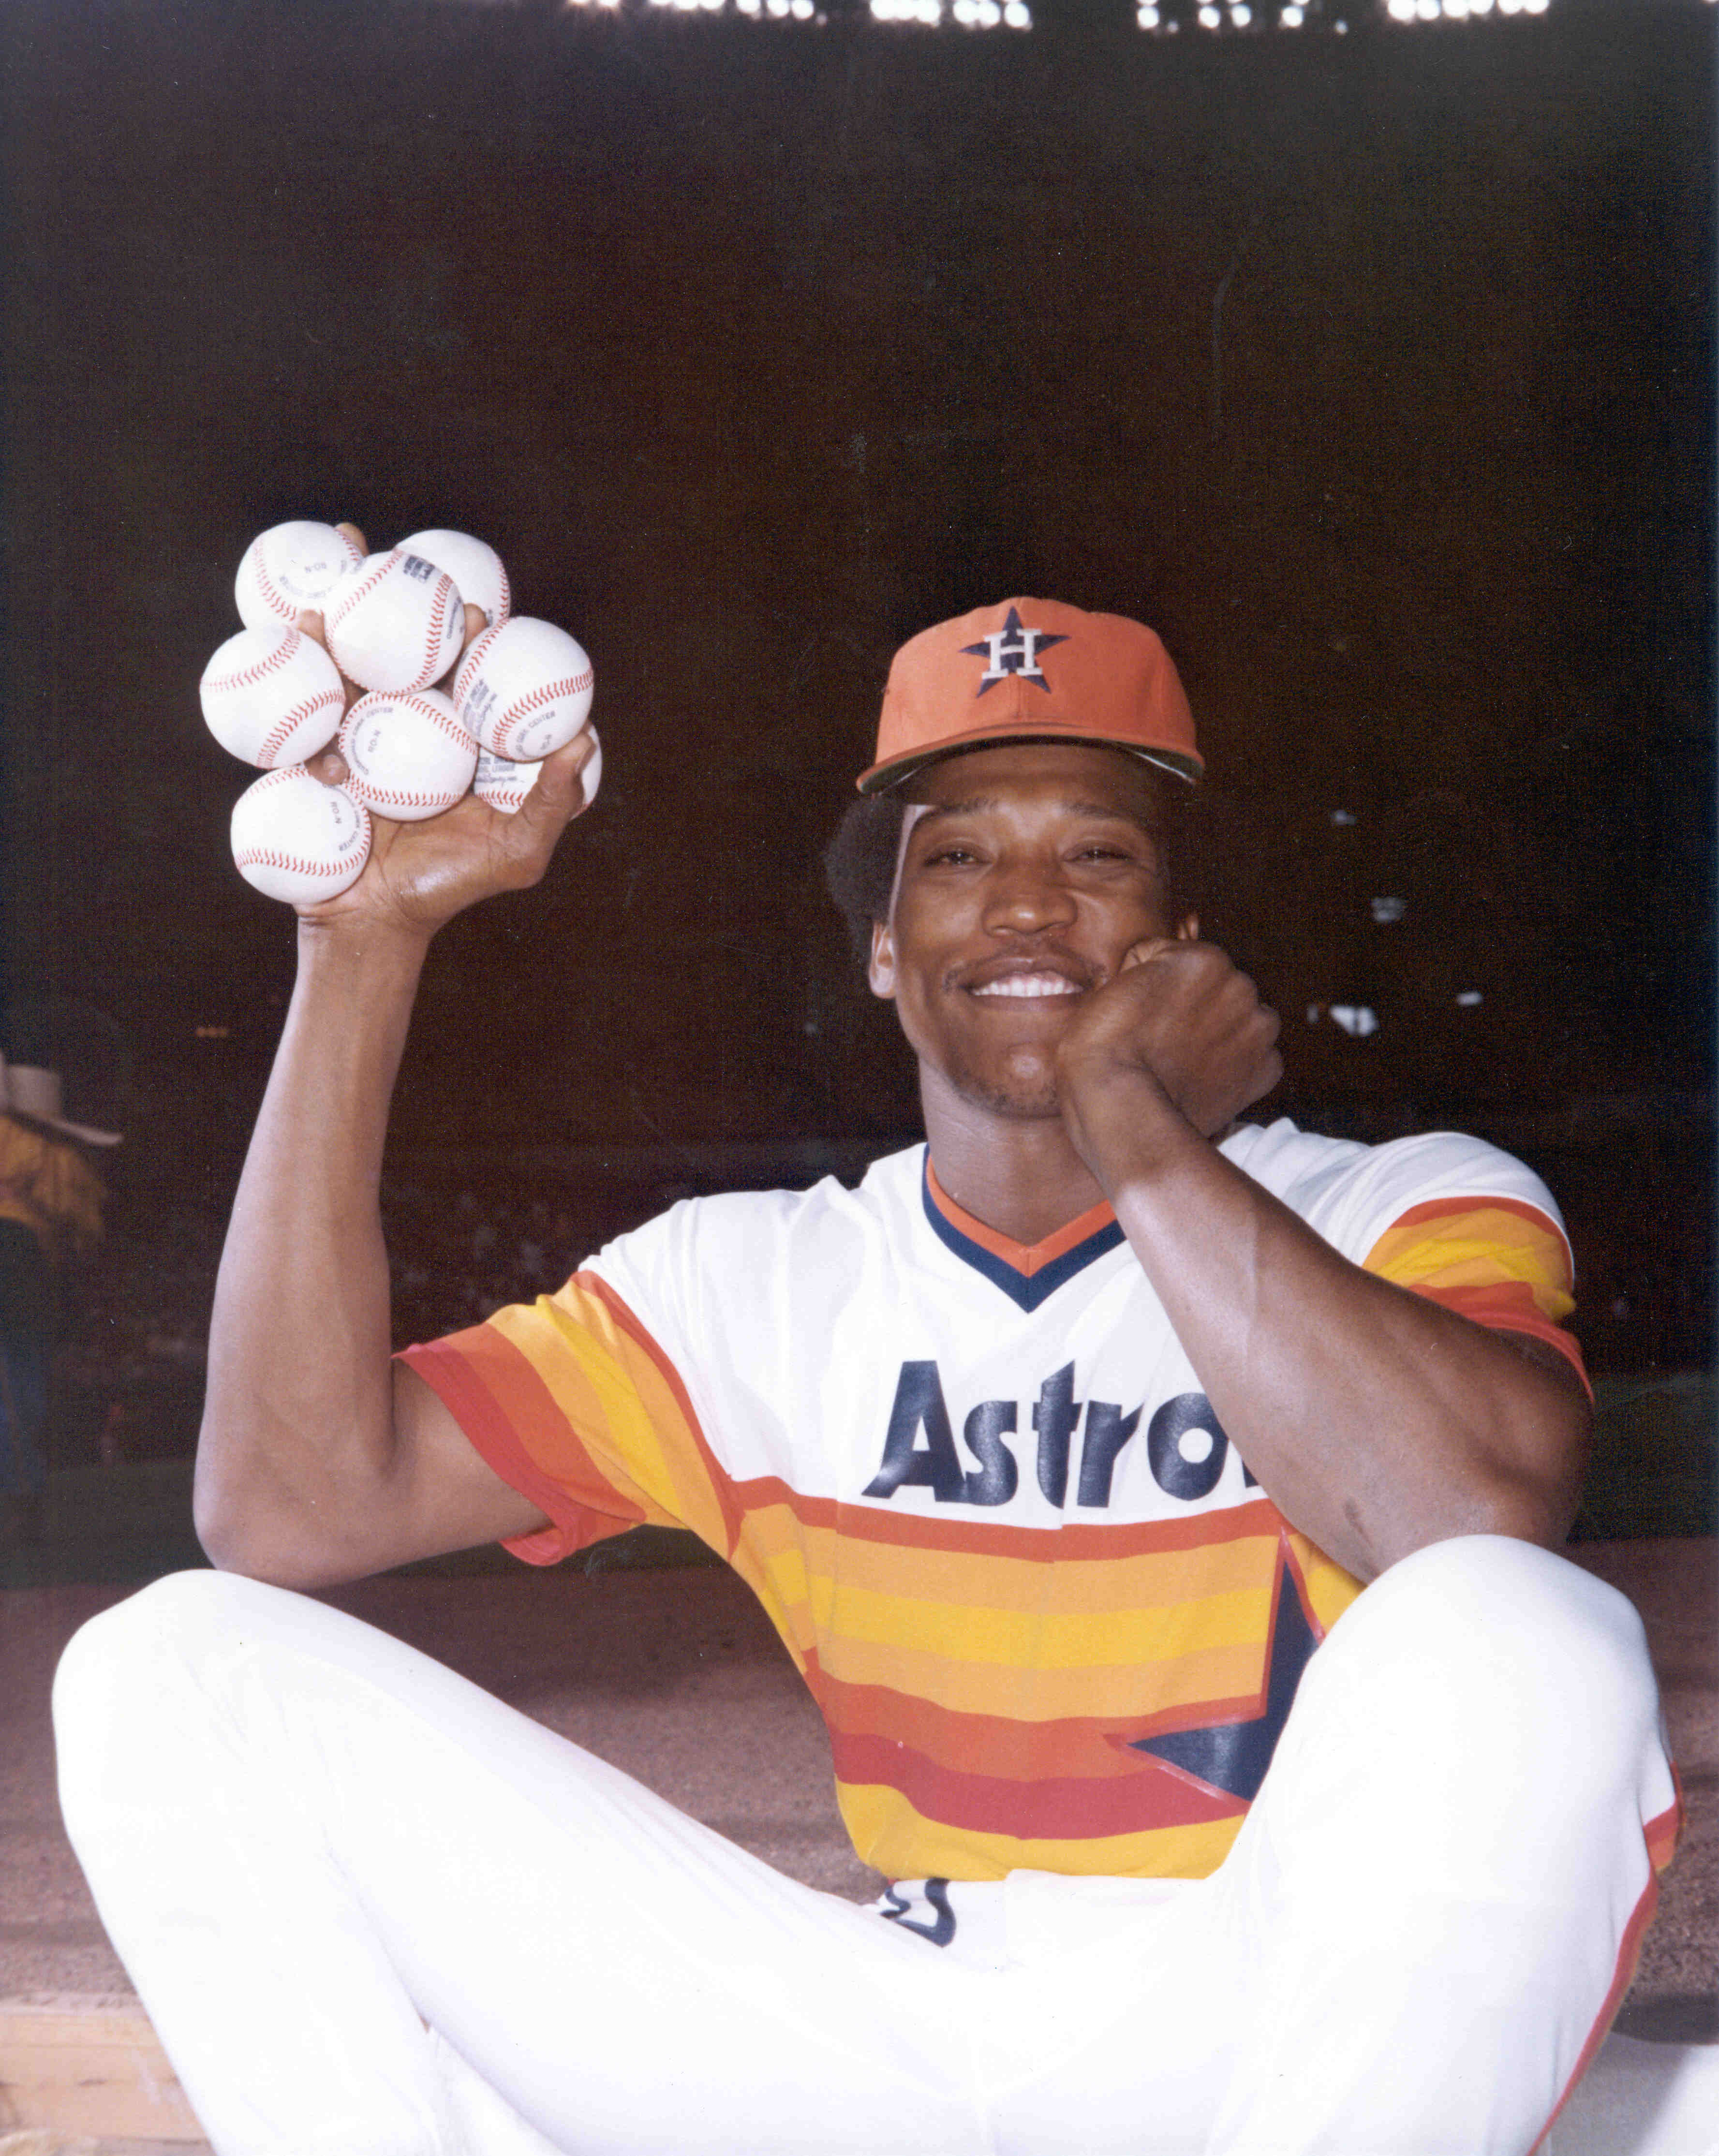 At the peak of his career, holding eight baseballs with his enormous pitching hand.